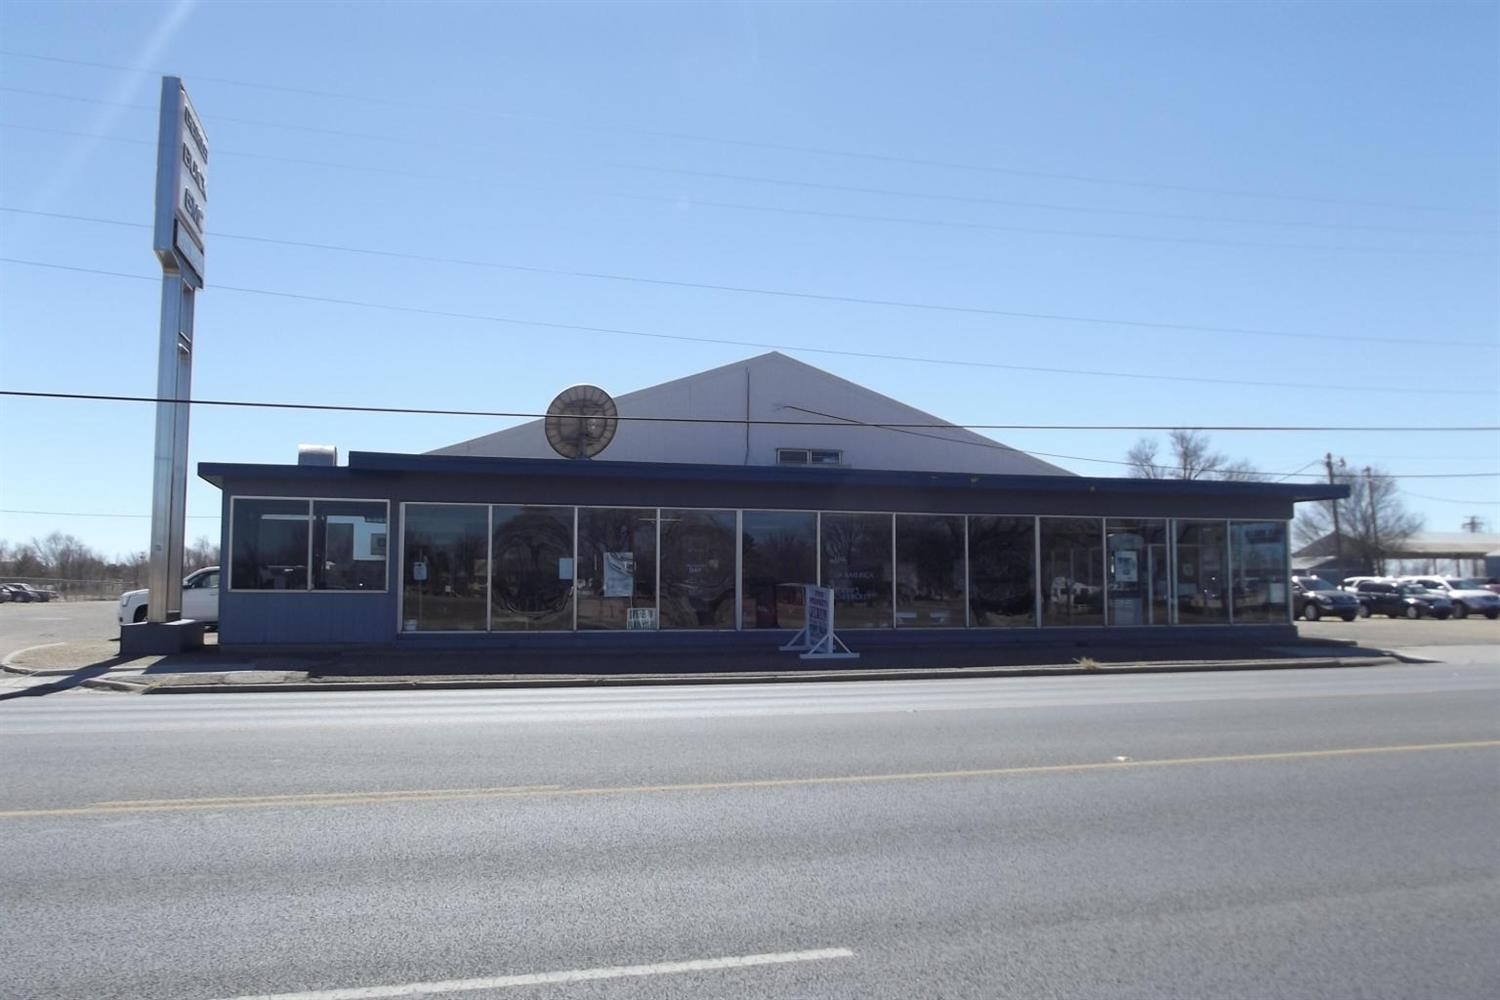 Excellent corner commercial property on well traveled busy street~ the corner of 5th (HWY 70) and Joliet Street. The main building has a showroom, offices, parts room, and a large shop wit multiple 20' overhead doors. 13,656 SF~ Showroom/Parts/Shop, 10,780 SF~Shops 2@3, 2,600 SF Paint/Storage, 3,780 SF Body Shop. It has 6.44 acres.